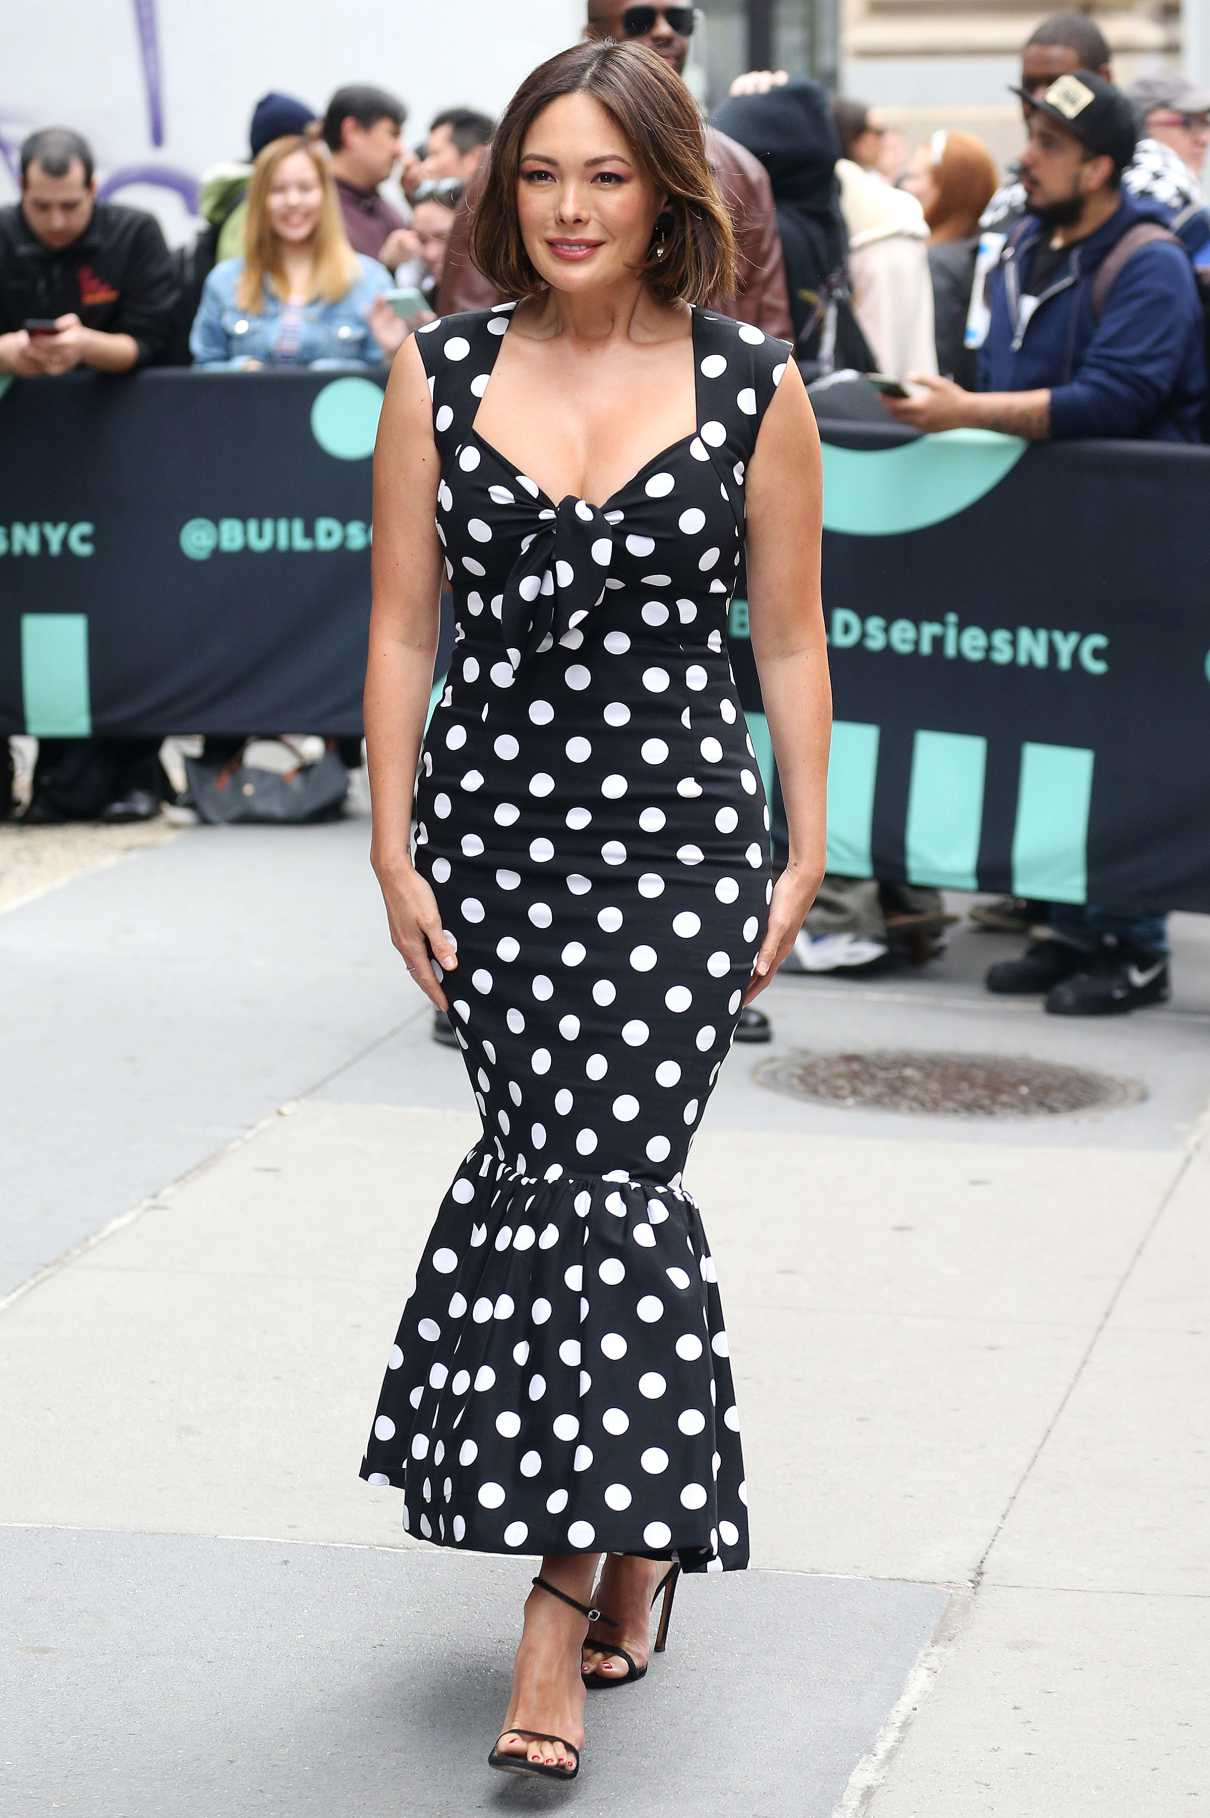 Lindsay Price in a Black Polka Dot Dress